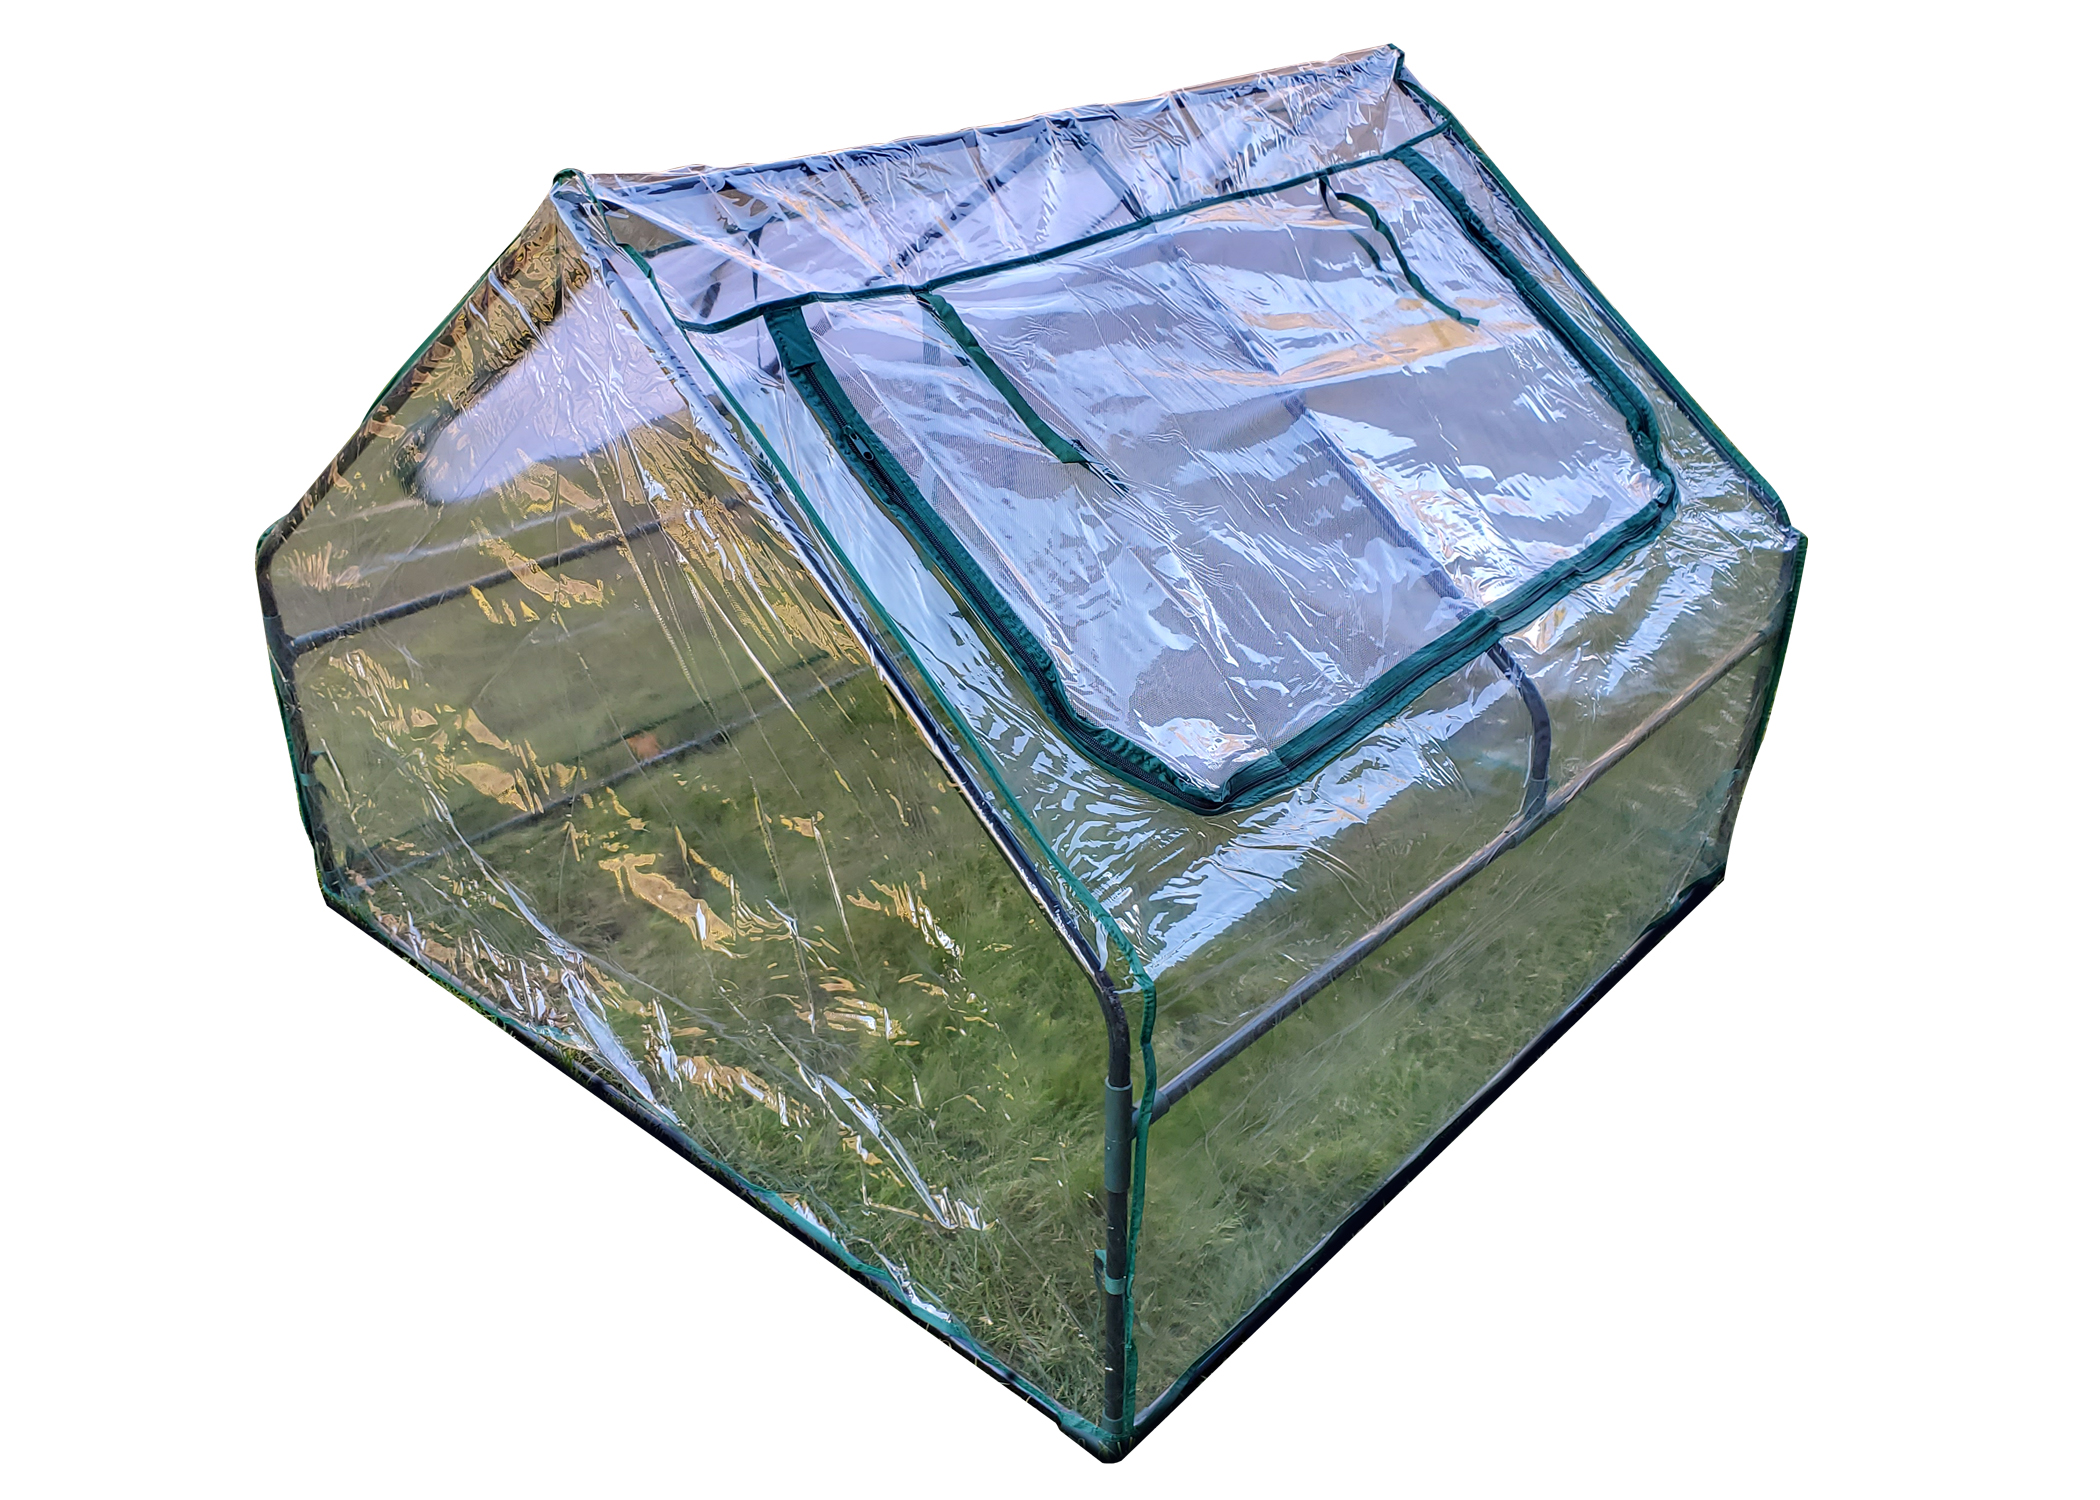 Zenport Mini Greenhouse SH3214A Greenhouse, 4-Feet by 4-Feet by 36-Inch